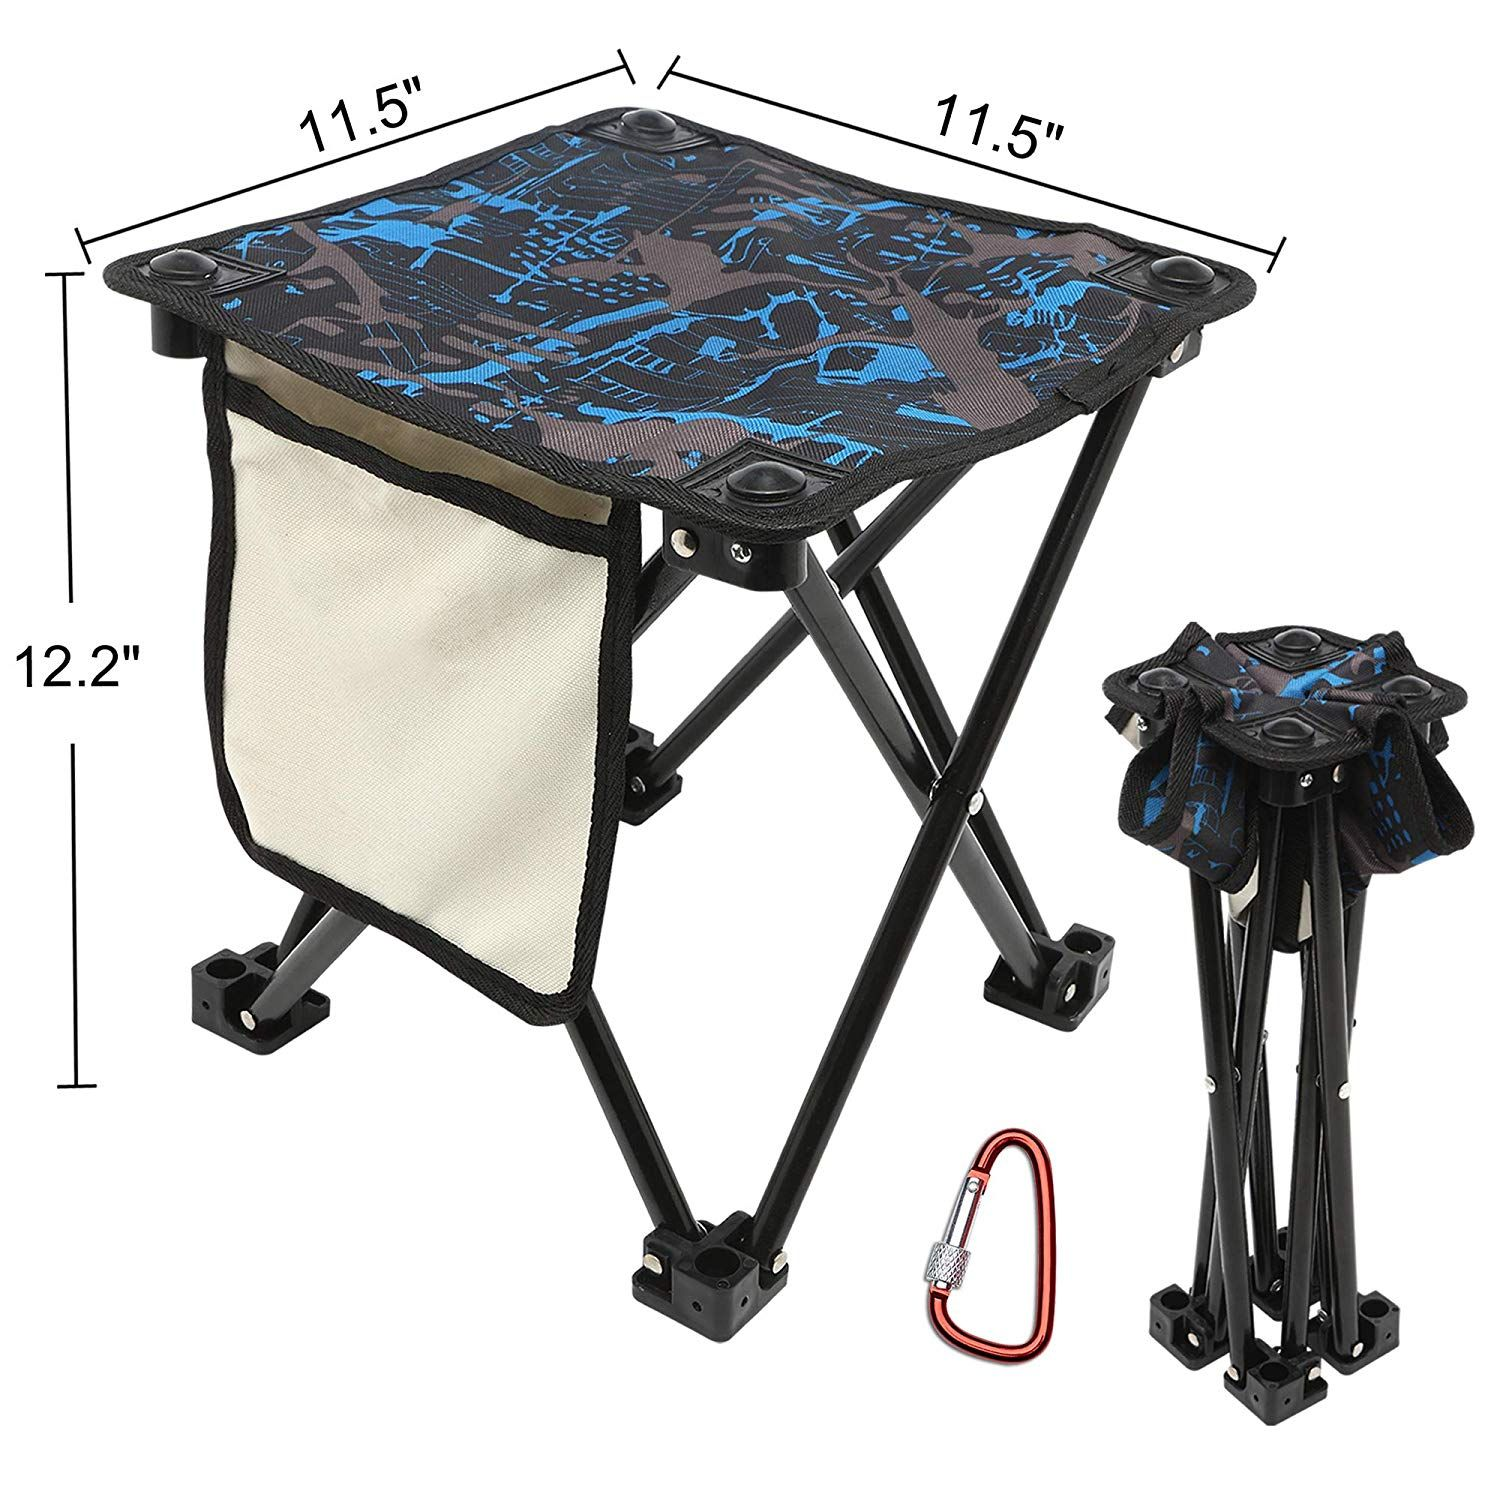 Portable Stool Mini Portable Folding Stool Folding Camping Stool Outdoor Folding